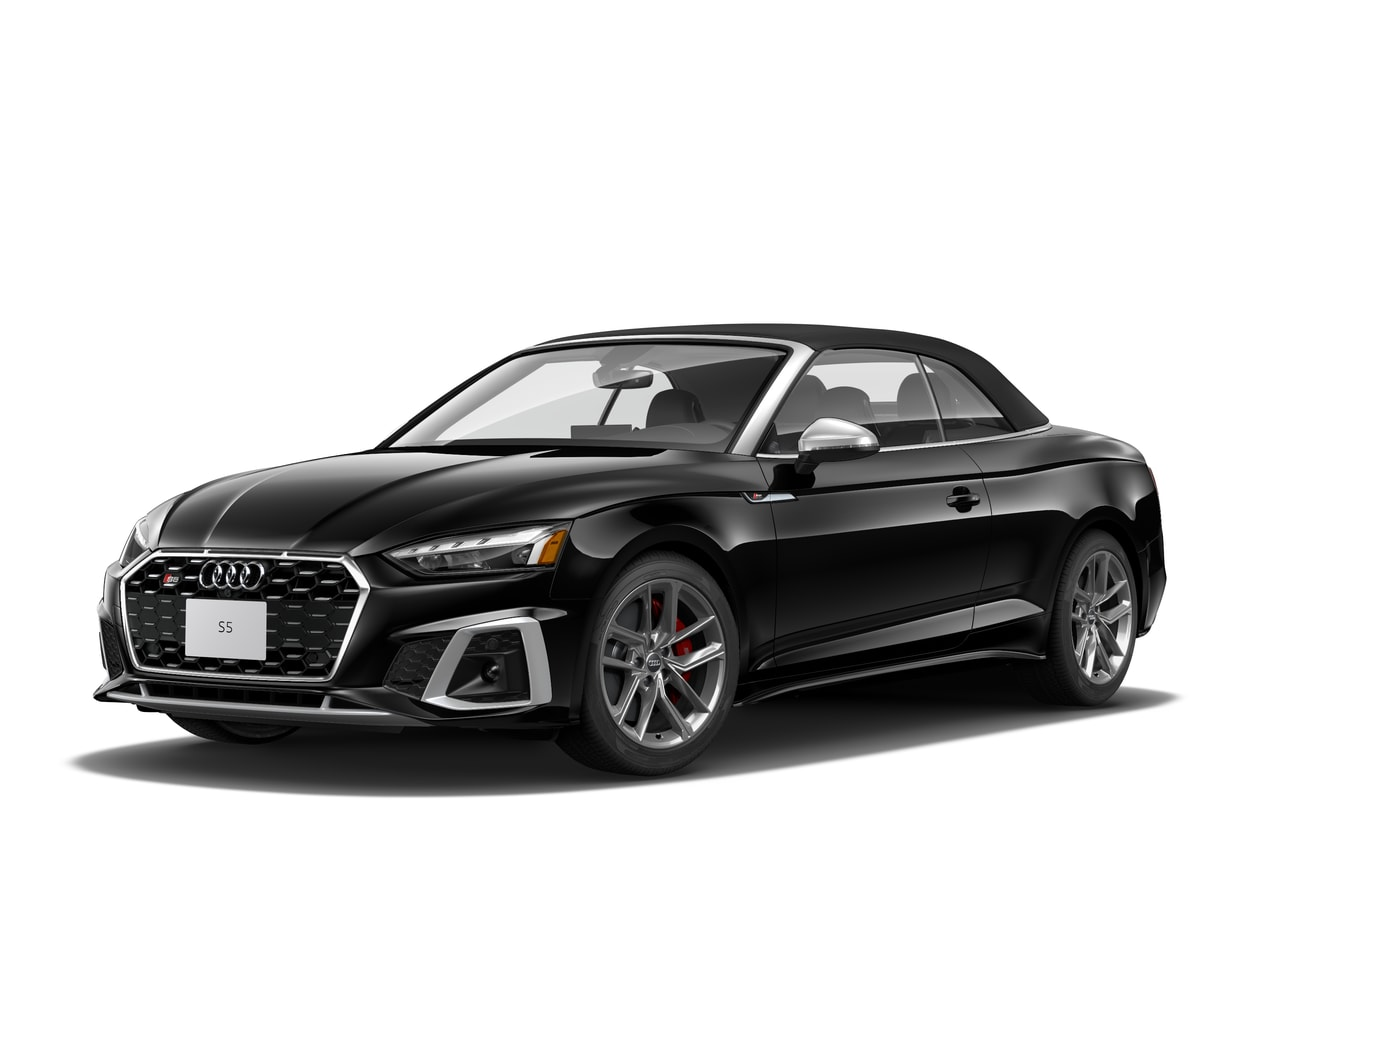 2020 audi s5 for sale in freehold nj  audi freehold